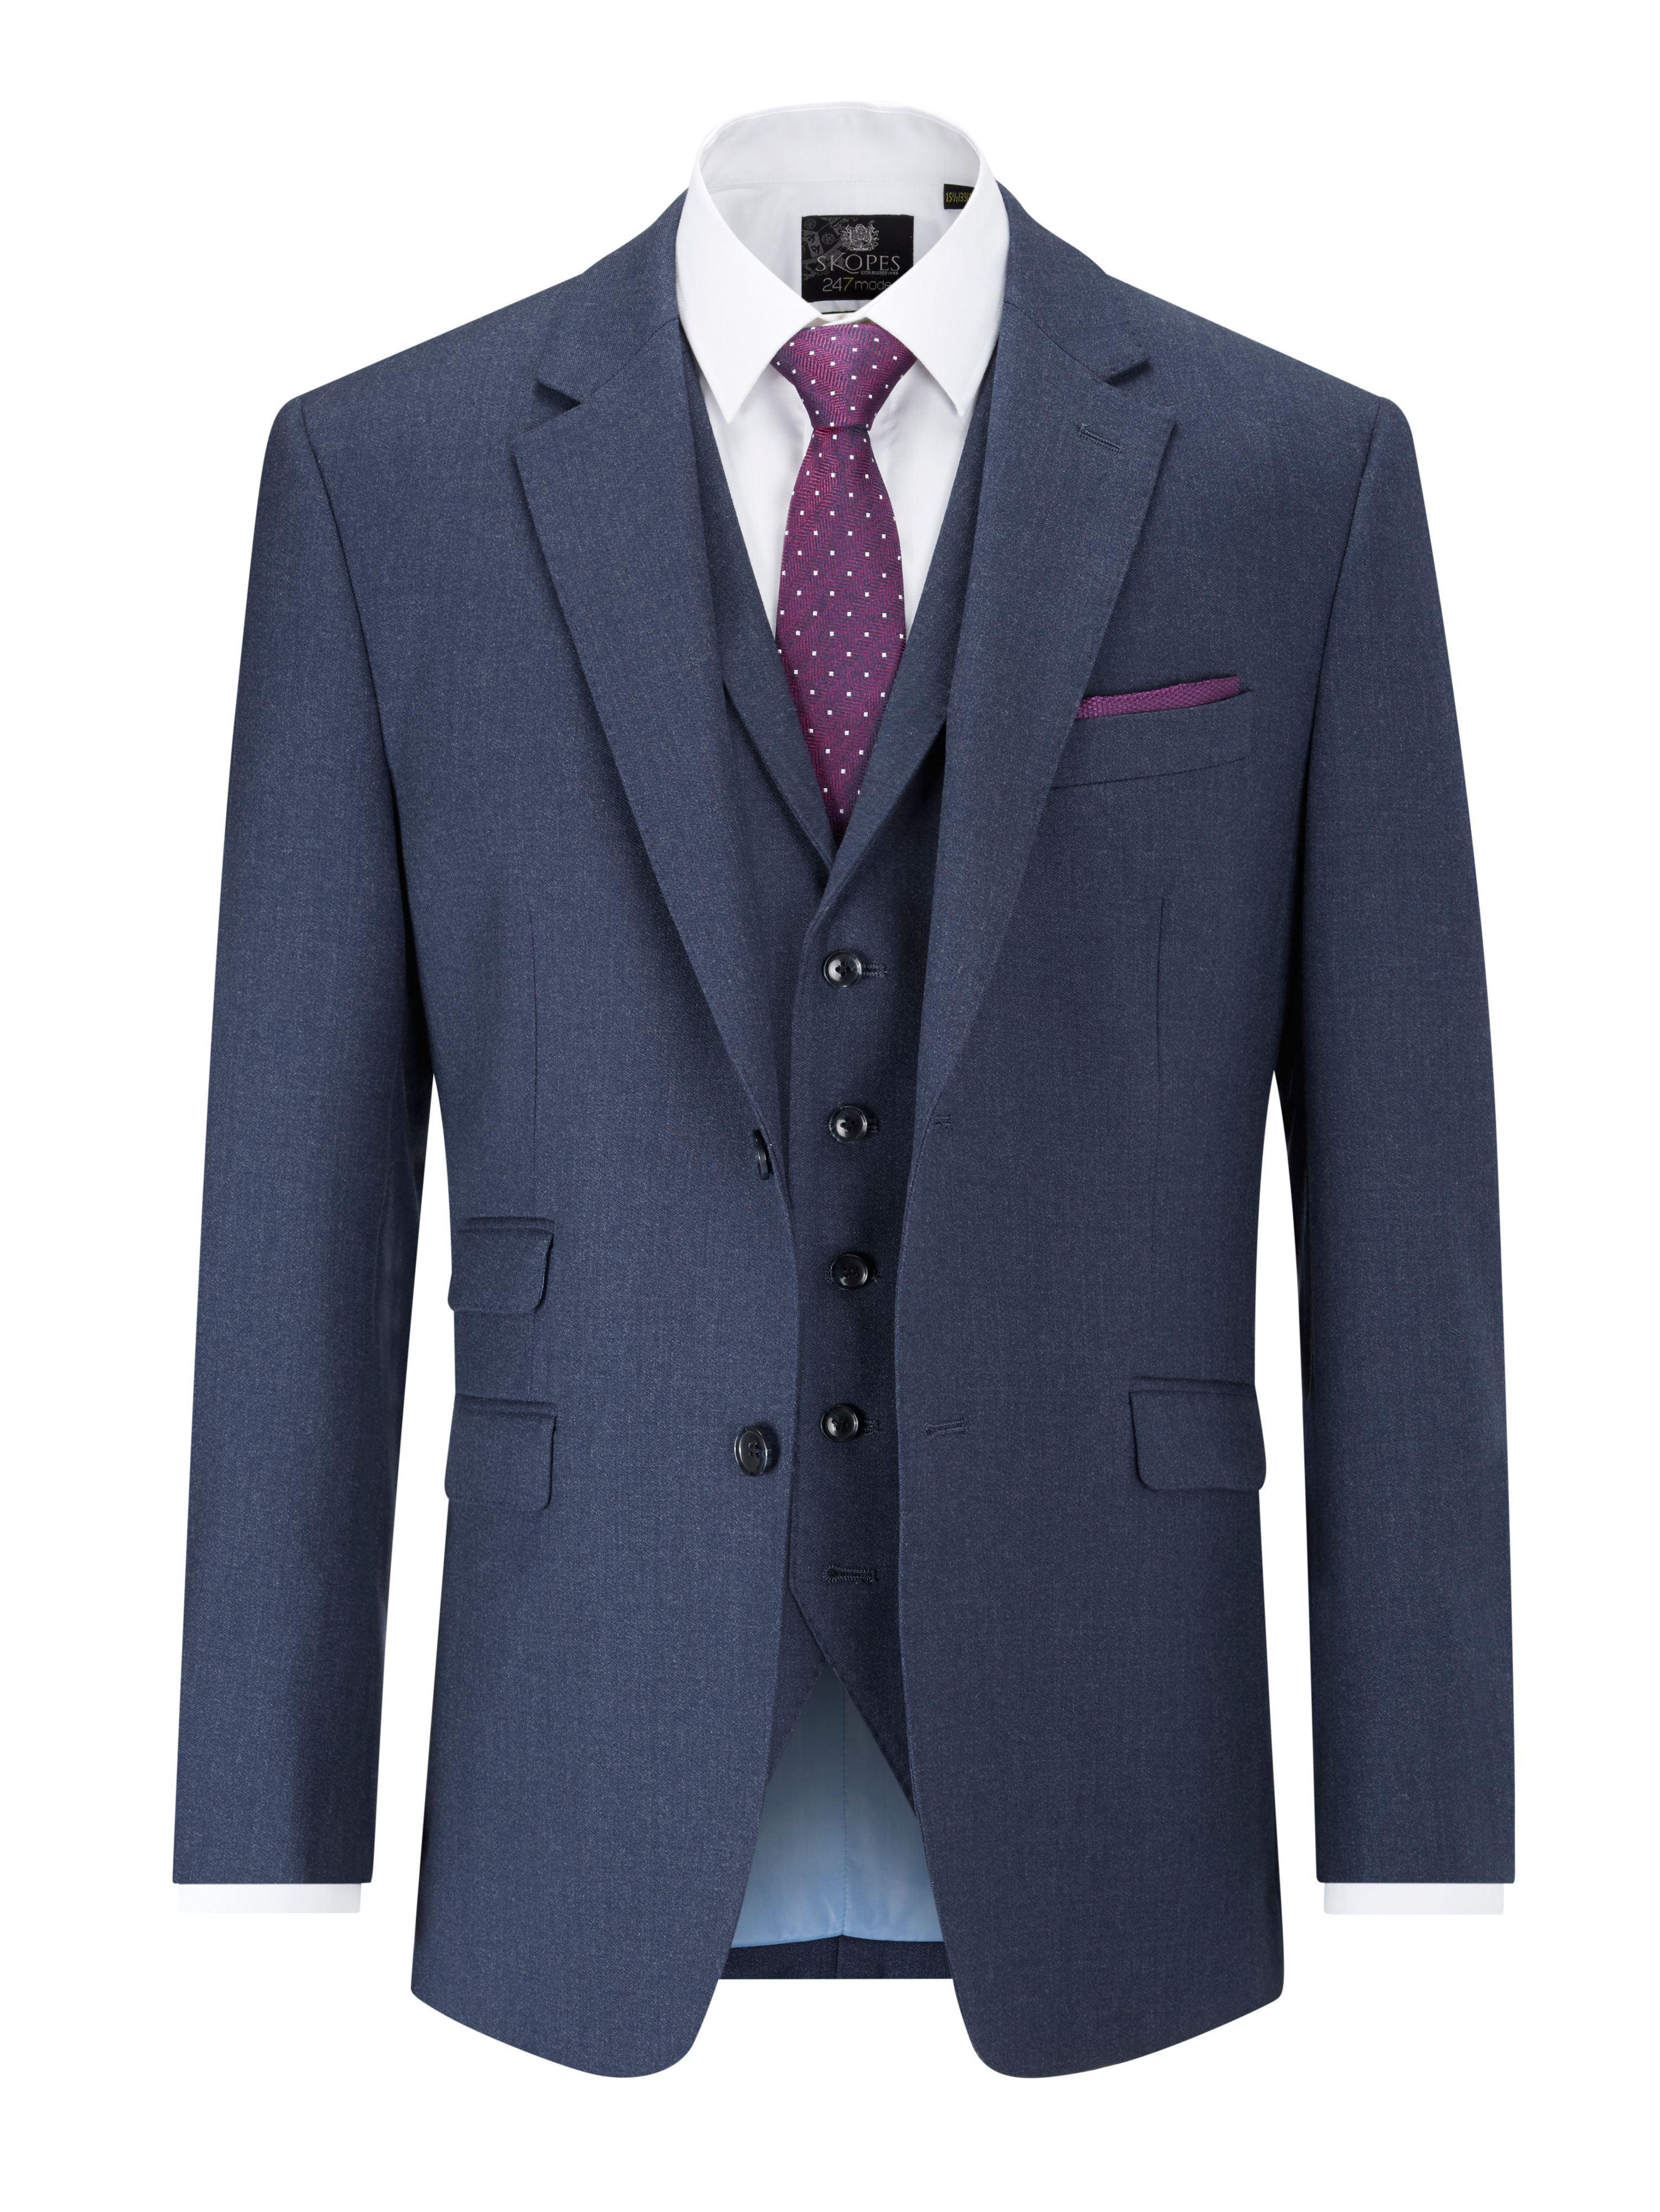 Free shipping on men's suits, suit jackets and sport coats at hereaupy06.gq Shop Nordstrom Men's Shop, Boss and more from the best brands. Totally free shipping and returns.